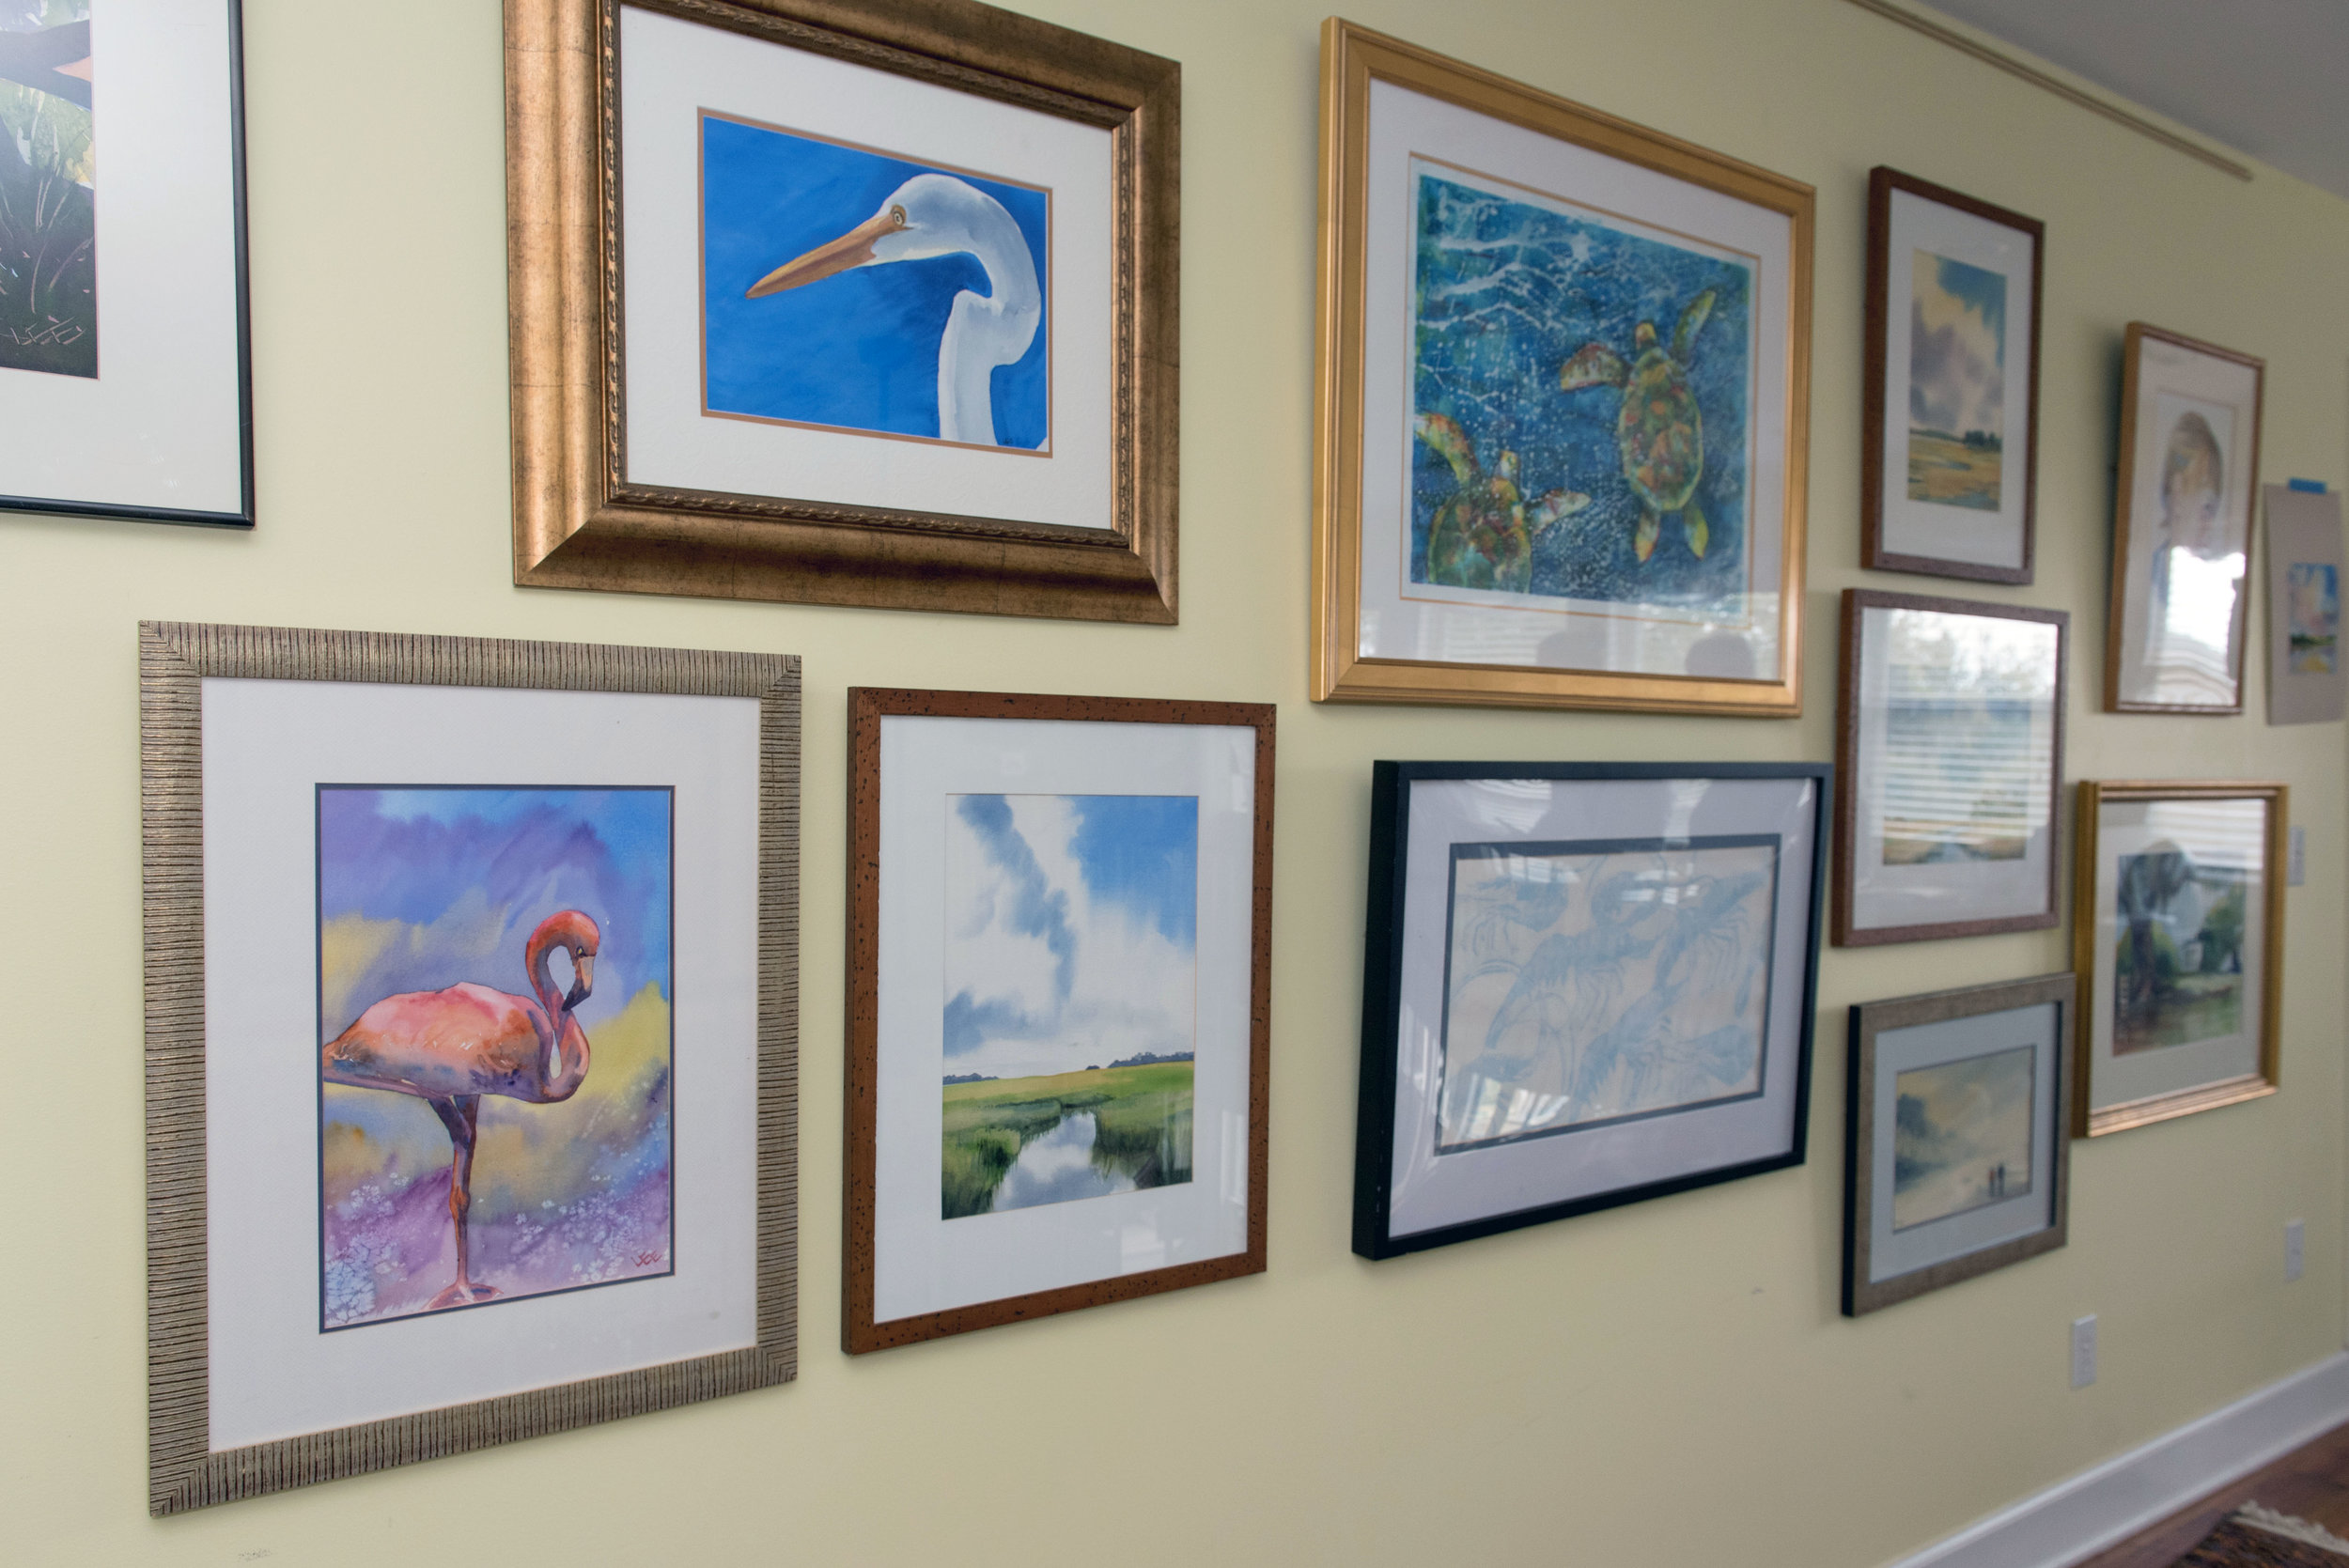 A collection of Bonnie Lee's artwork hanging on a wall.